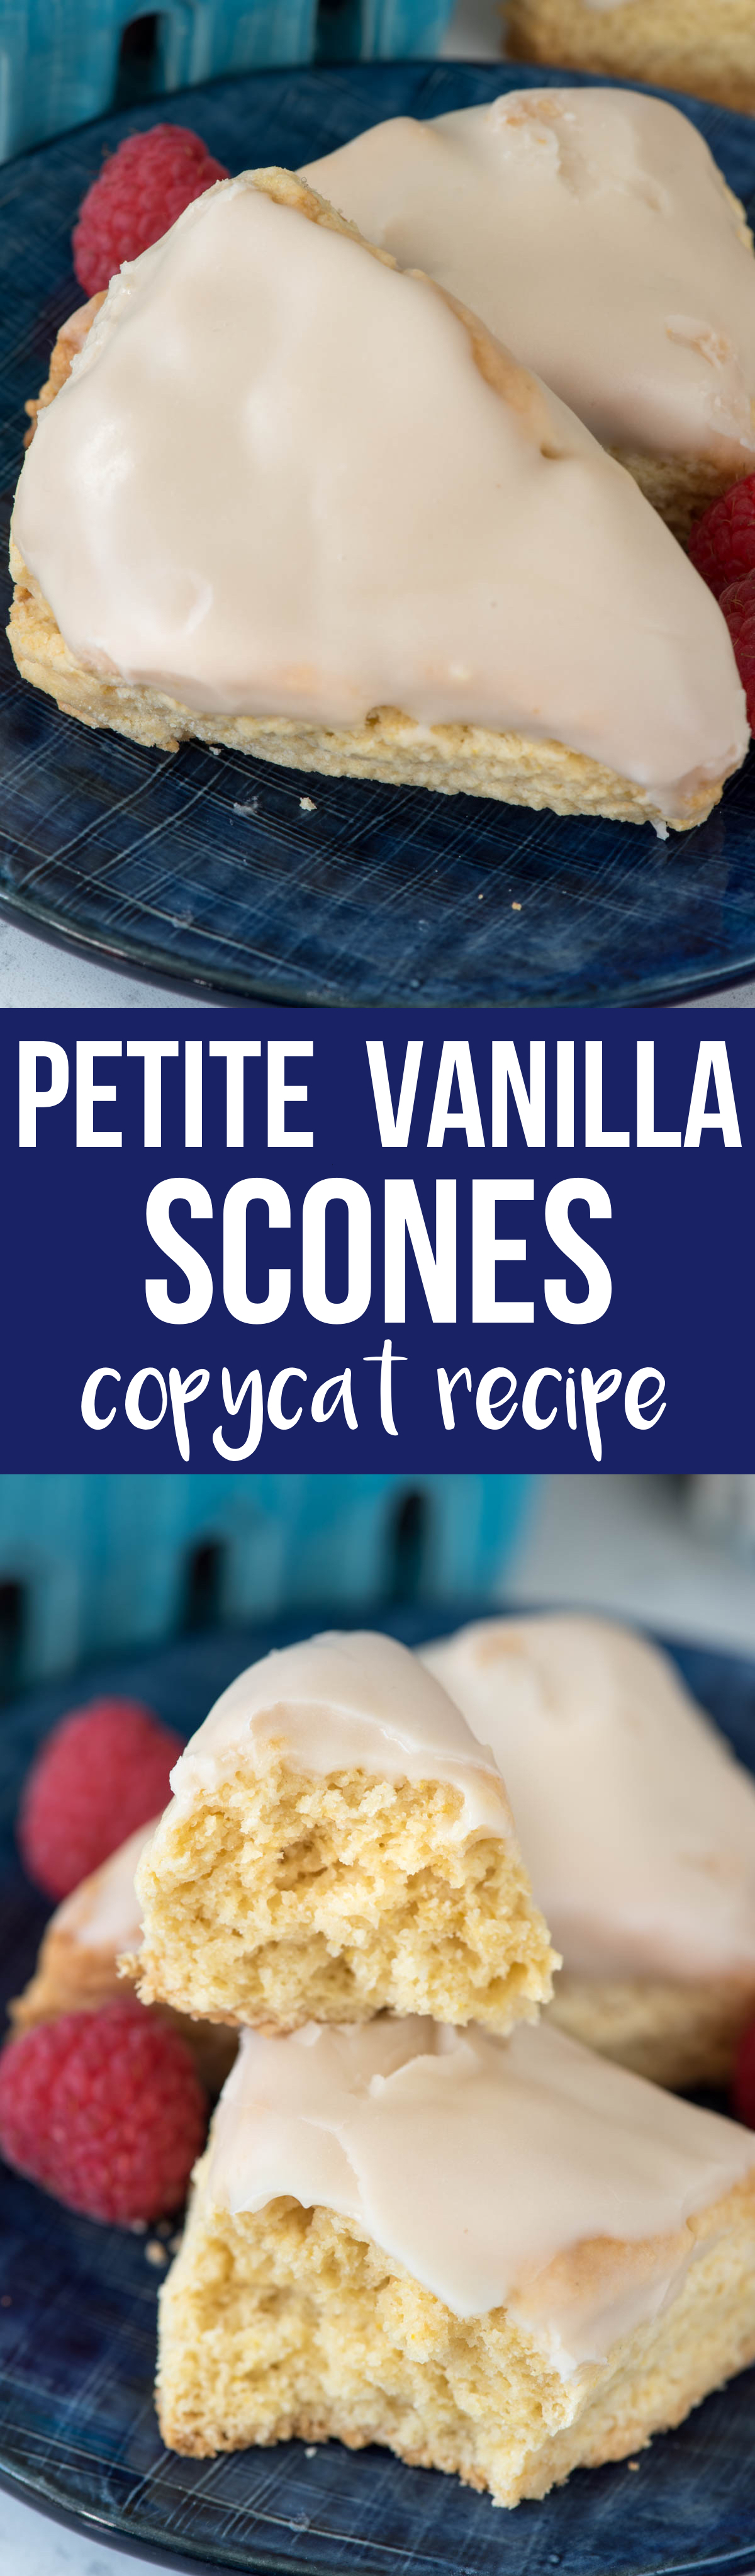 Copycat Petite Vanilla Scones are just like that scone recipe at Starbucks but they're better because they're made at home. This is the best scone recipe because it's made with pudding mix - the scones are pillowy soft and stay soft for days. The flavor of these scones is amazing!